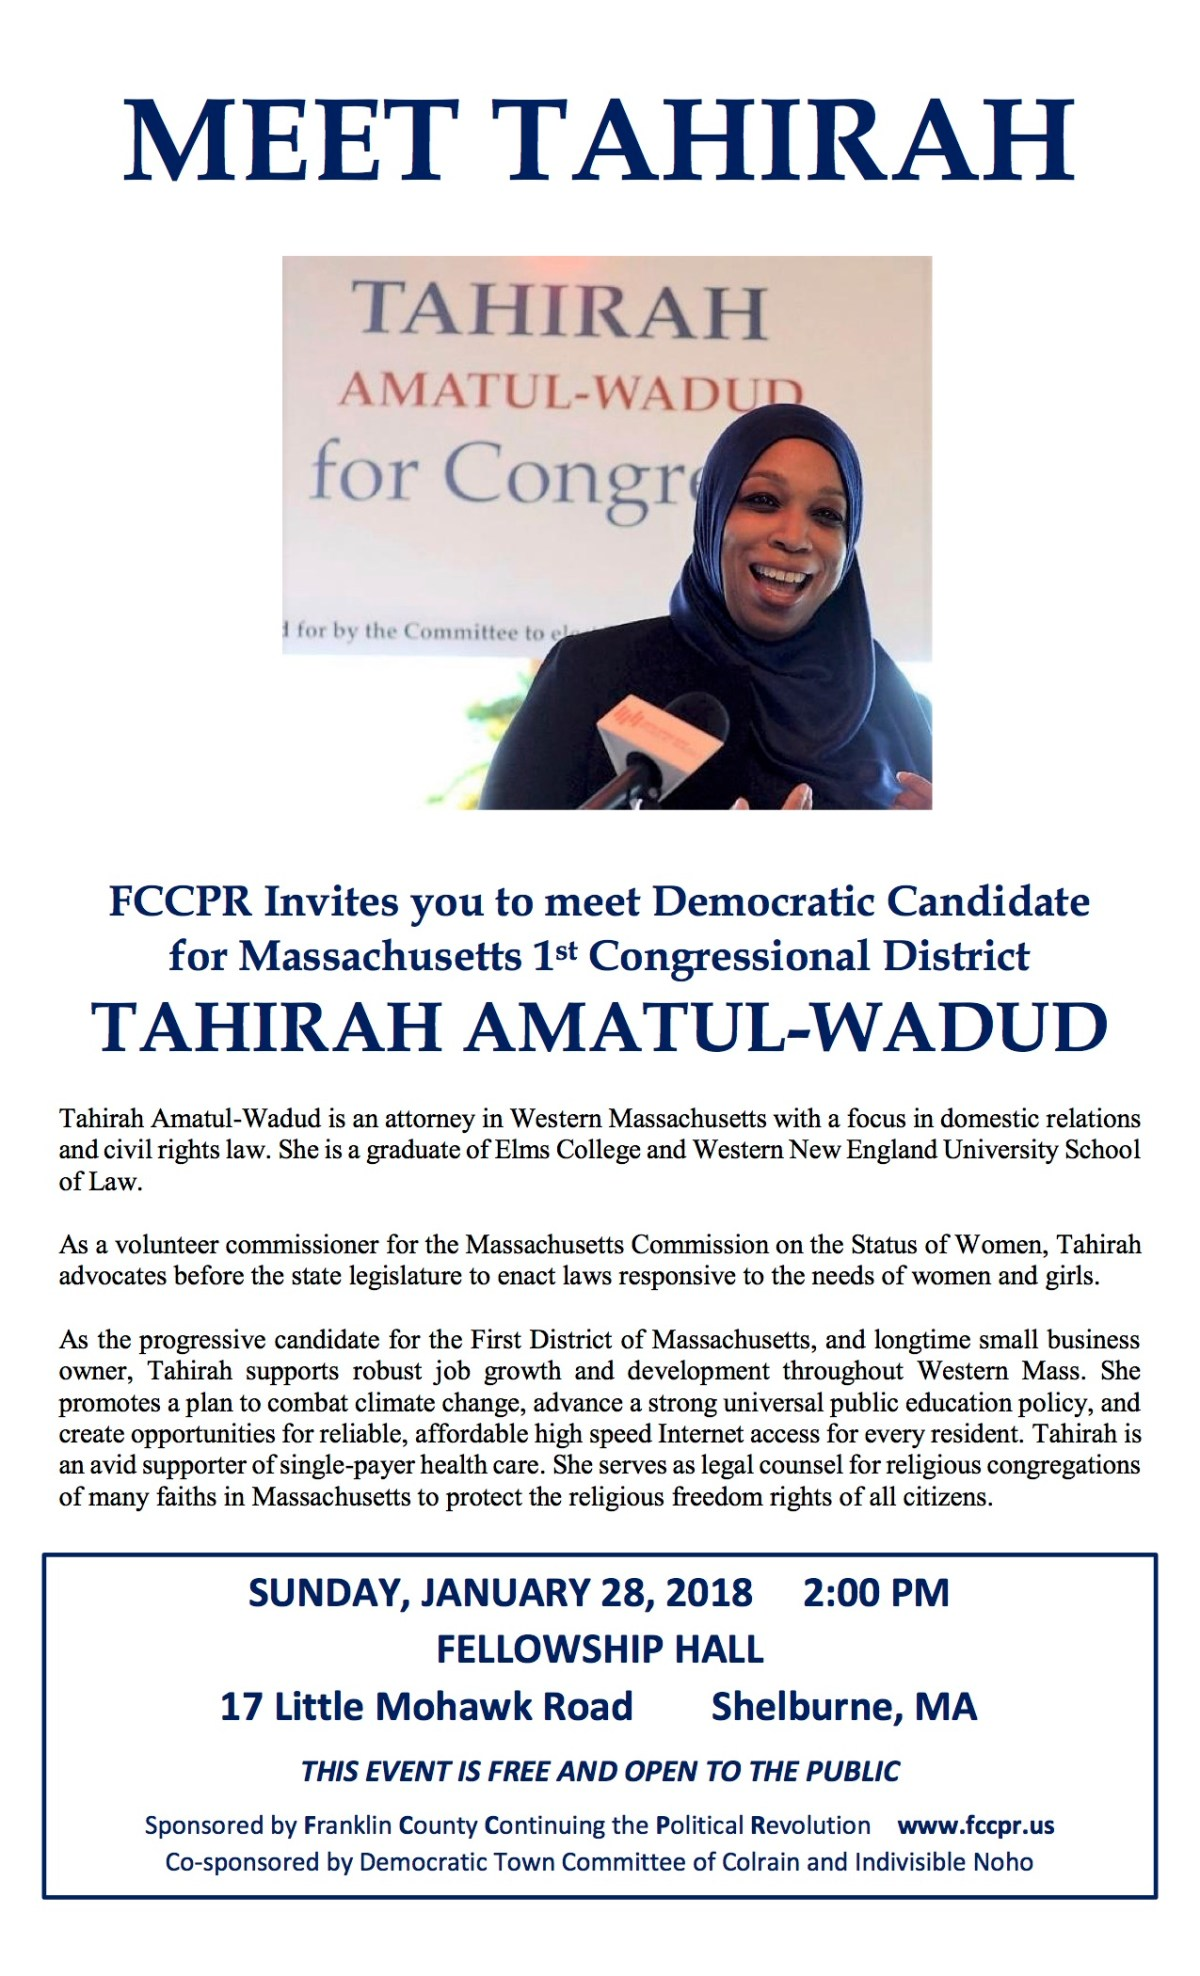 Meet Tahirah Amatul-Wadud, Democratic Candidate for Massachusetts 1st Congressional District